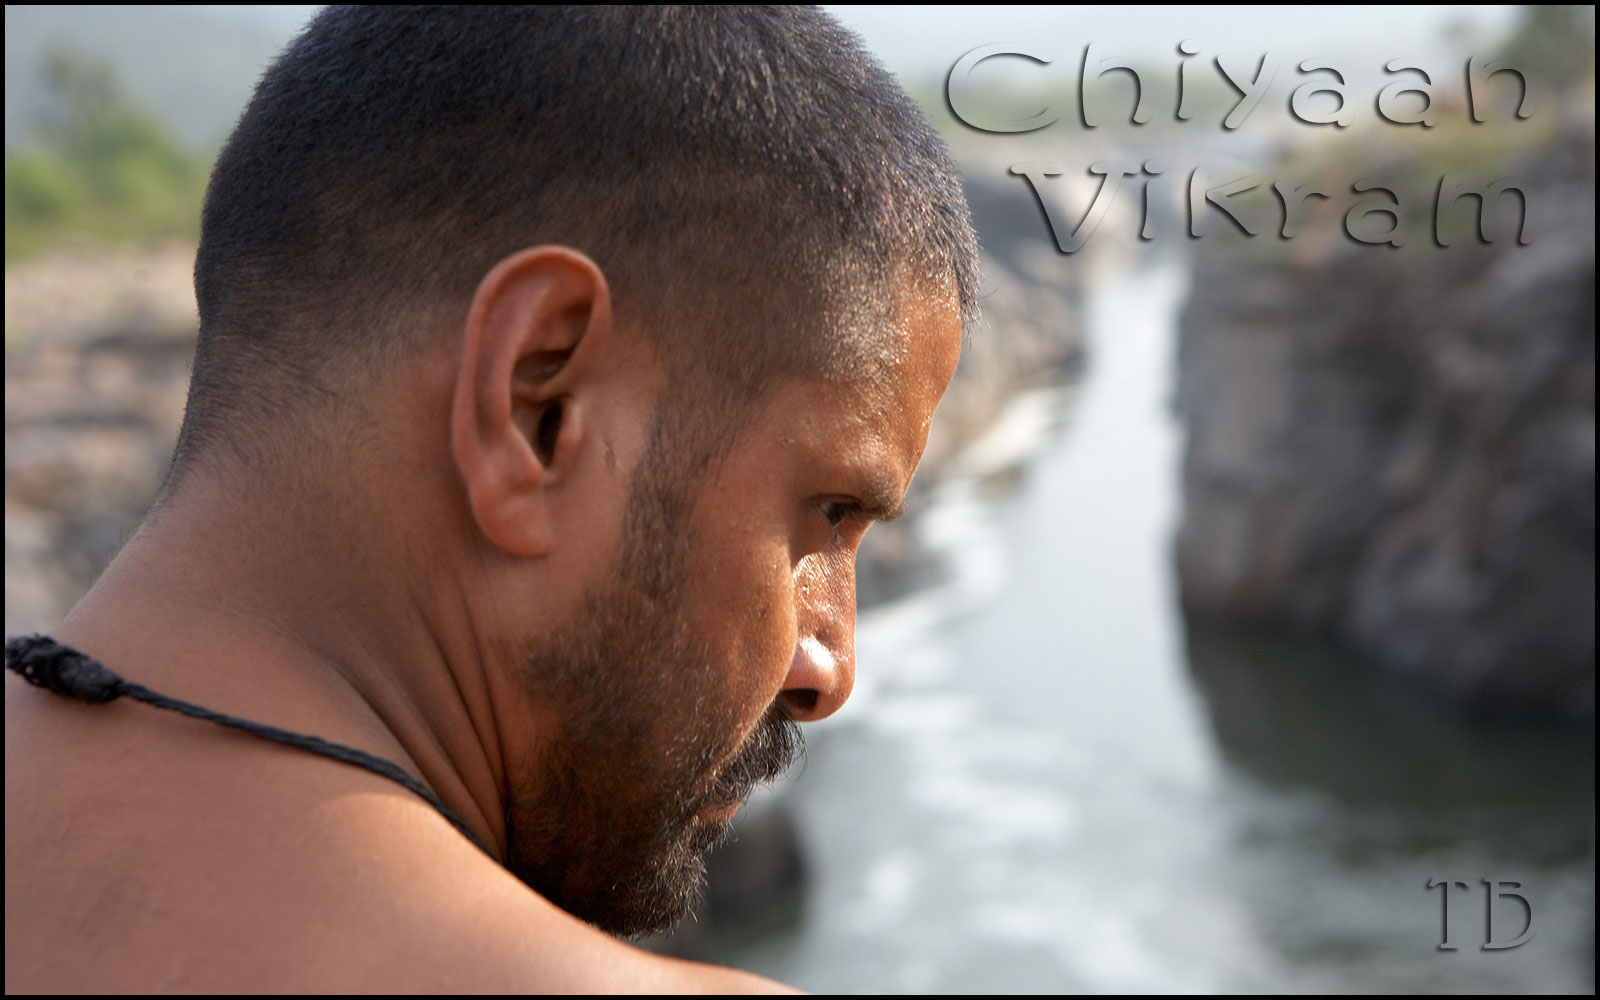 Vikram Widescreen Wallpapers From Raavan (Villain